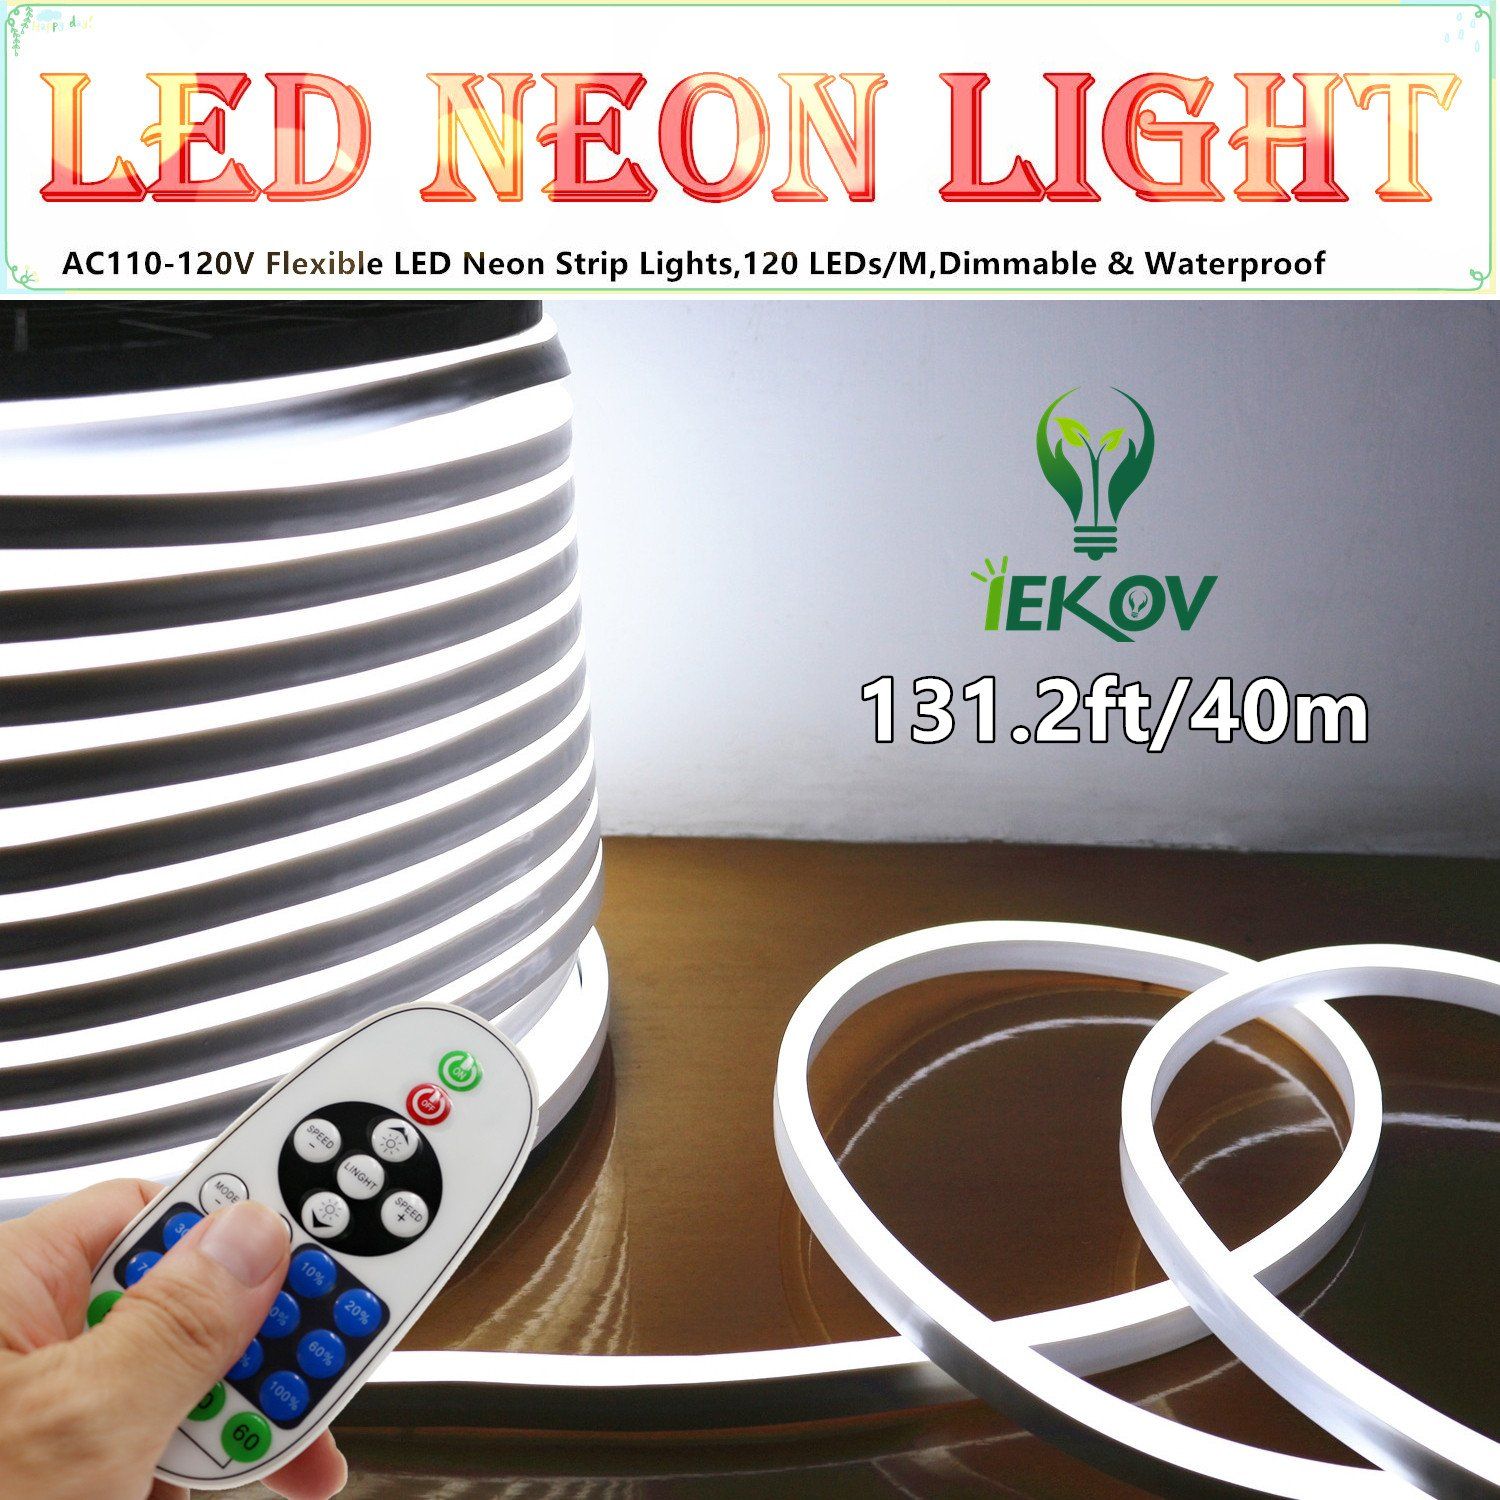 LED NEON LIGHT, IEKOV™ AC 110-120V Flexible LED Neon Strip Lights, 120 LEDs/M, Dimmable, Waterproof 2835 SMD LED Rope Light + Remote Controller for Home Decoration (131.2ft/40m, White)